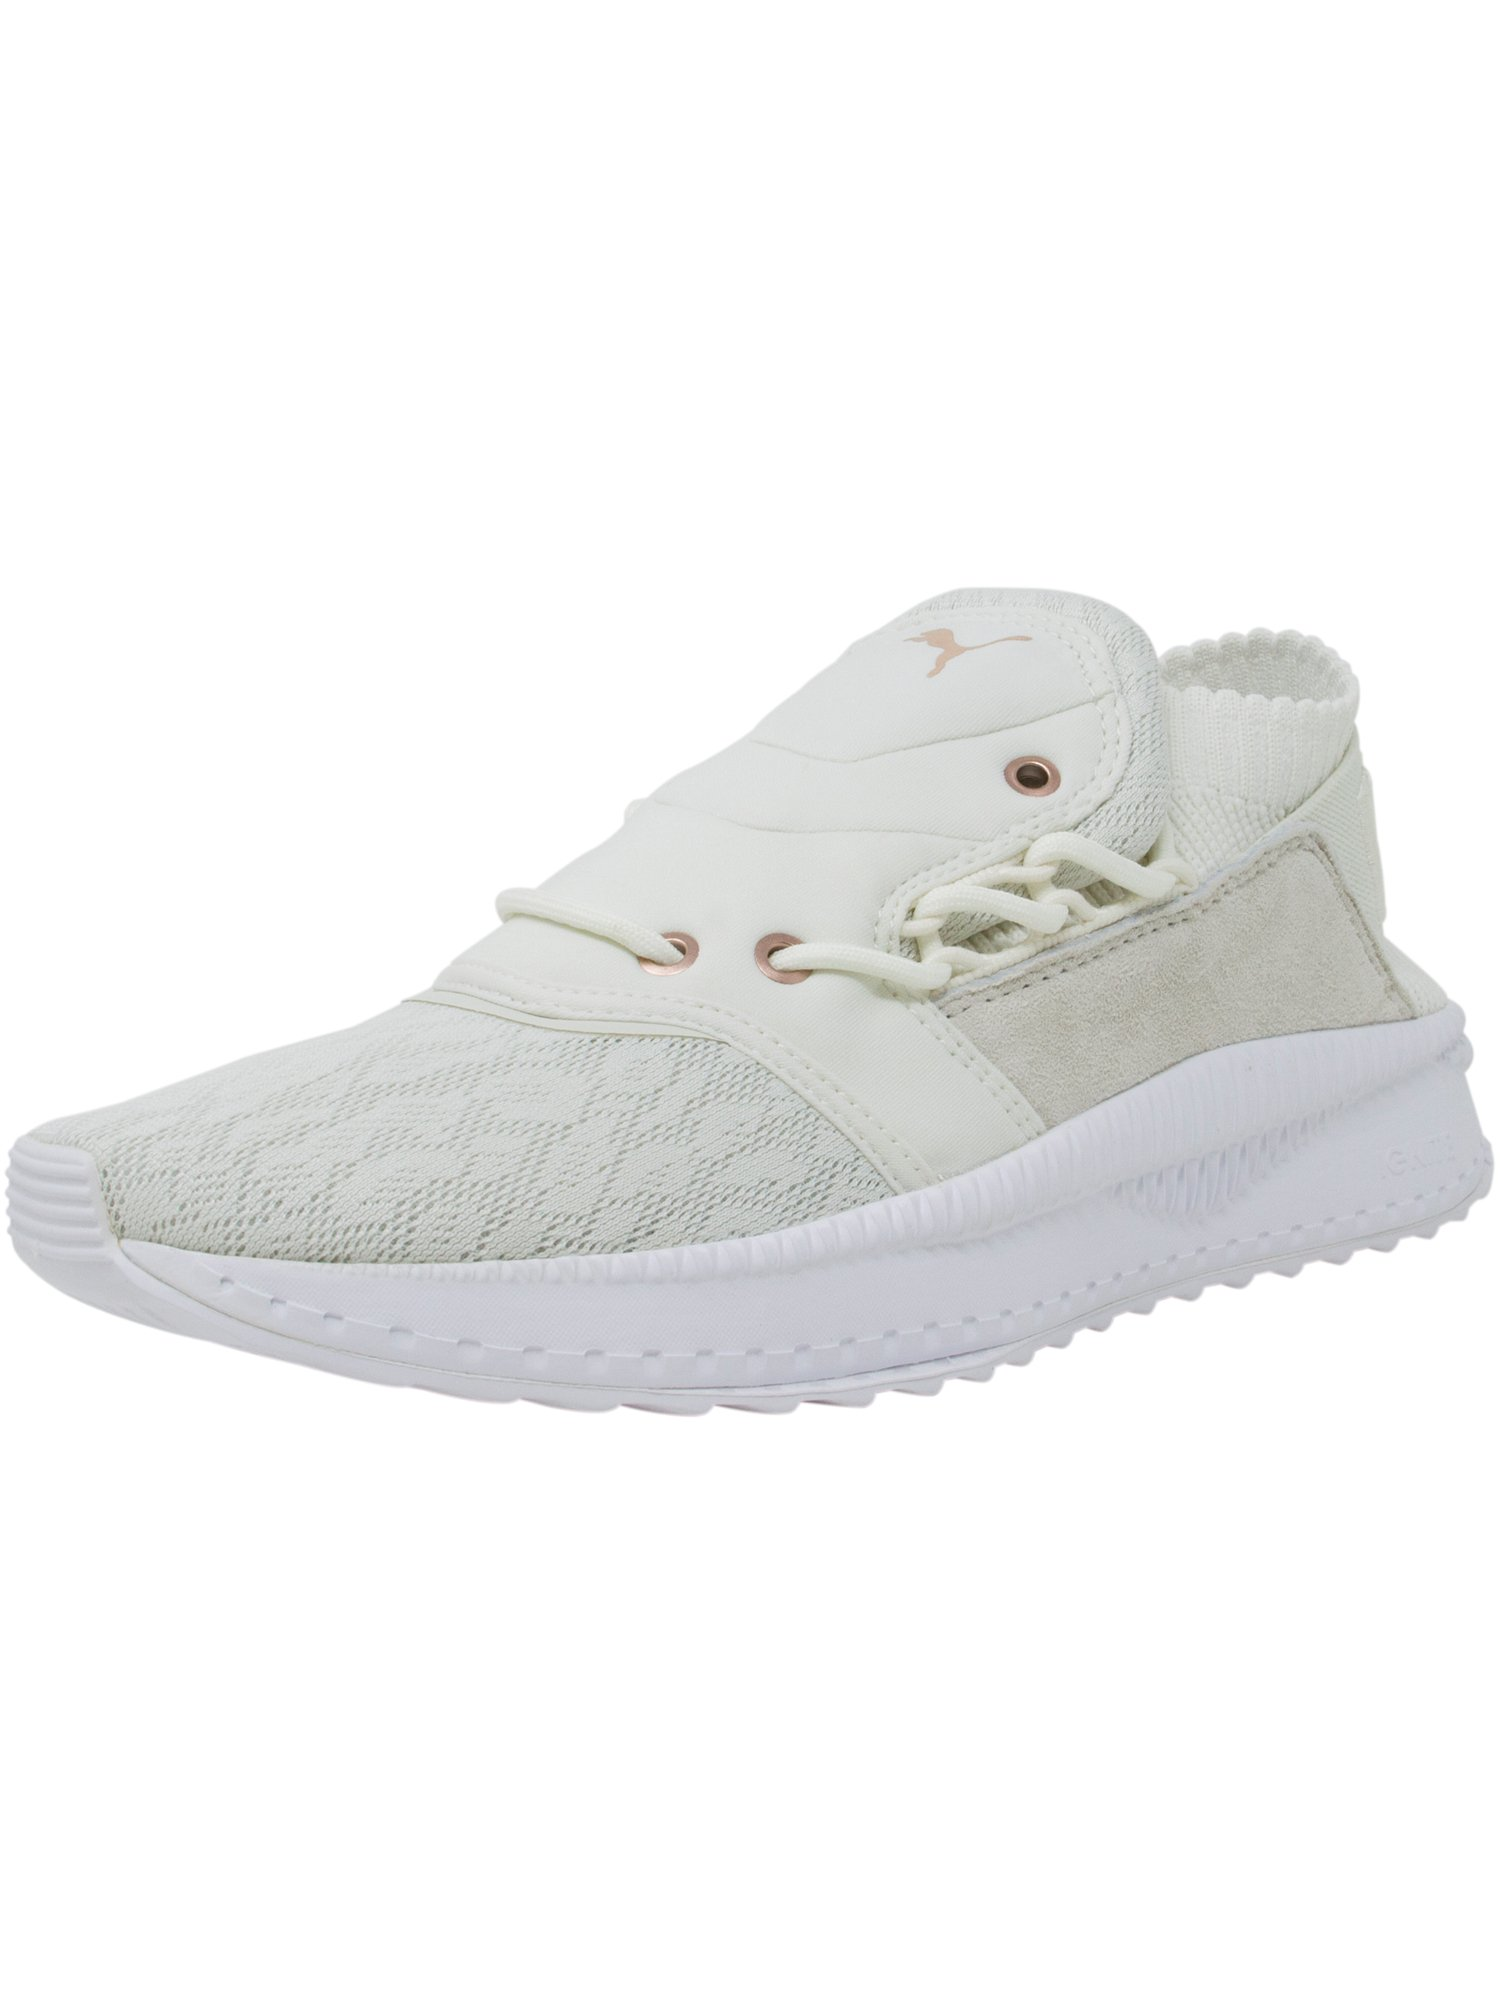 Puma Women's Tsugi Shinsei Marshmallow / Ankle-High Fabric Training Shoes - 8M